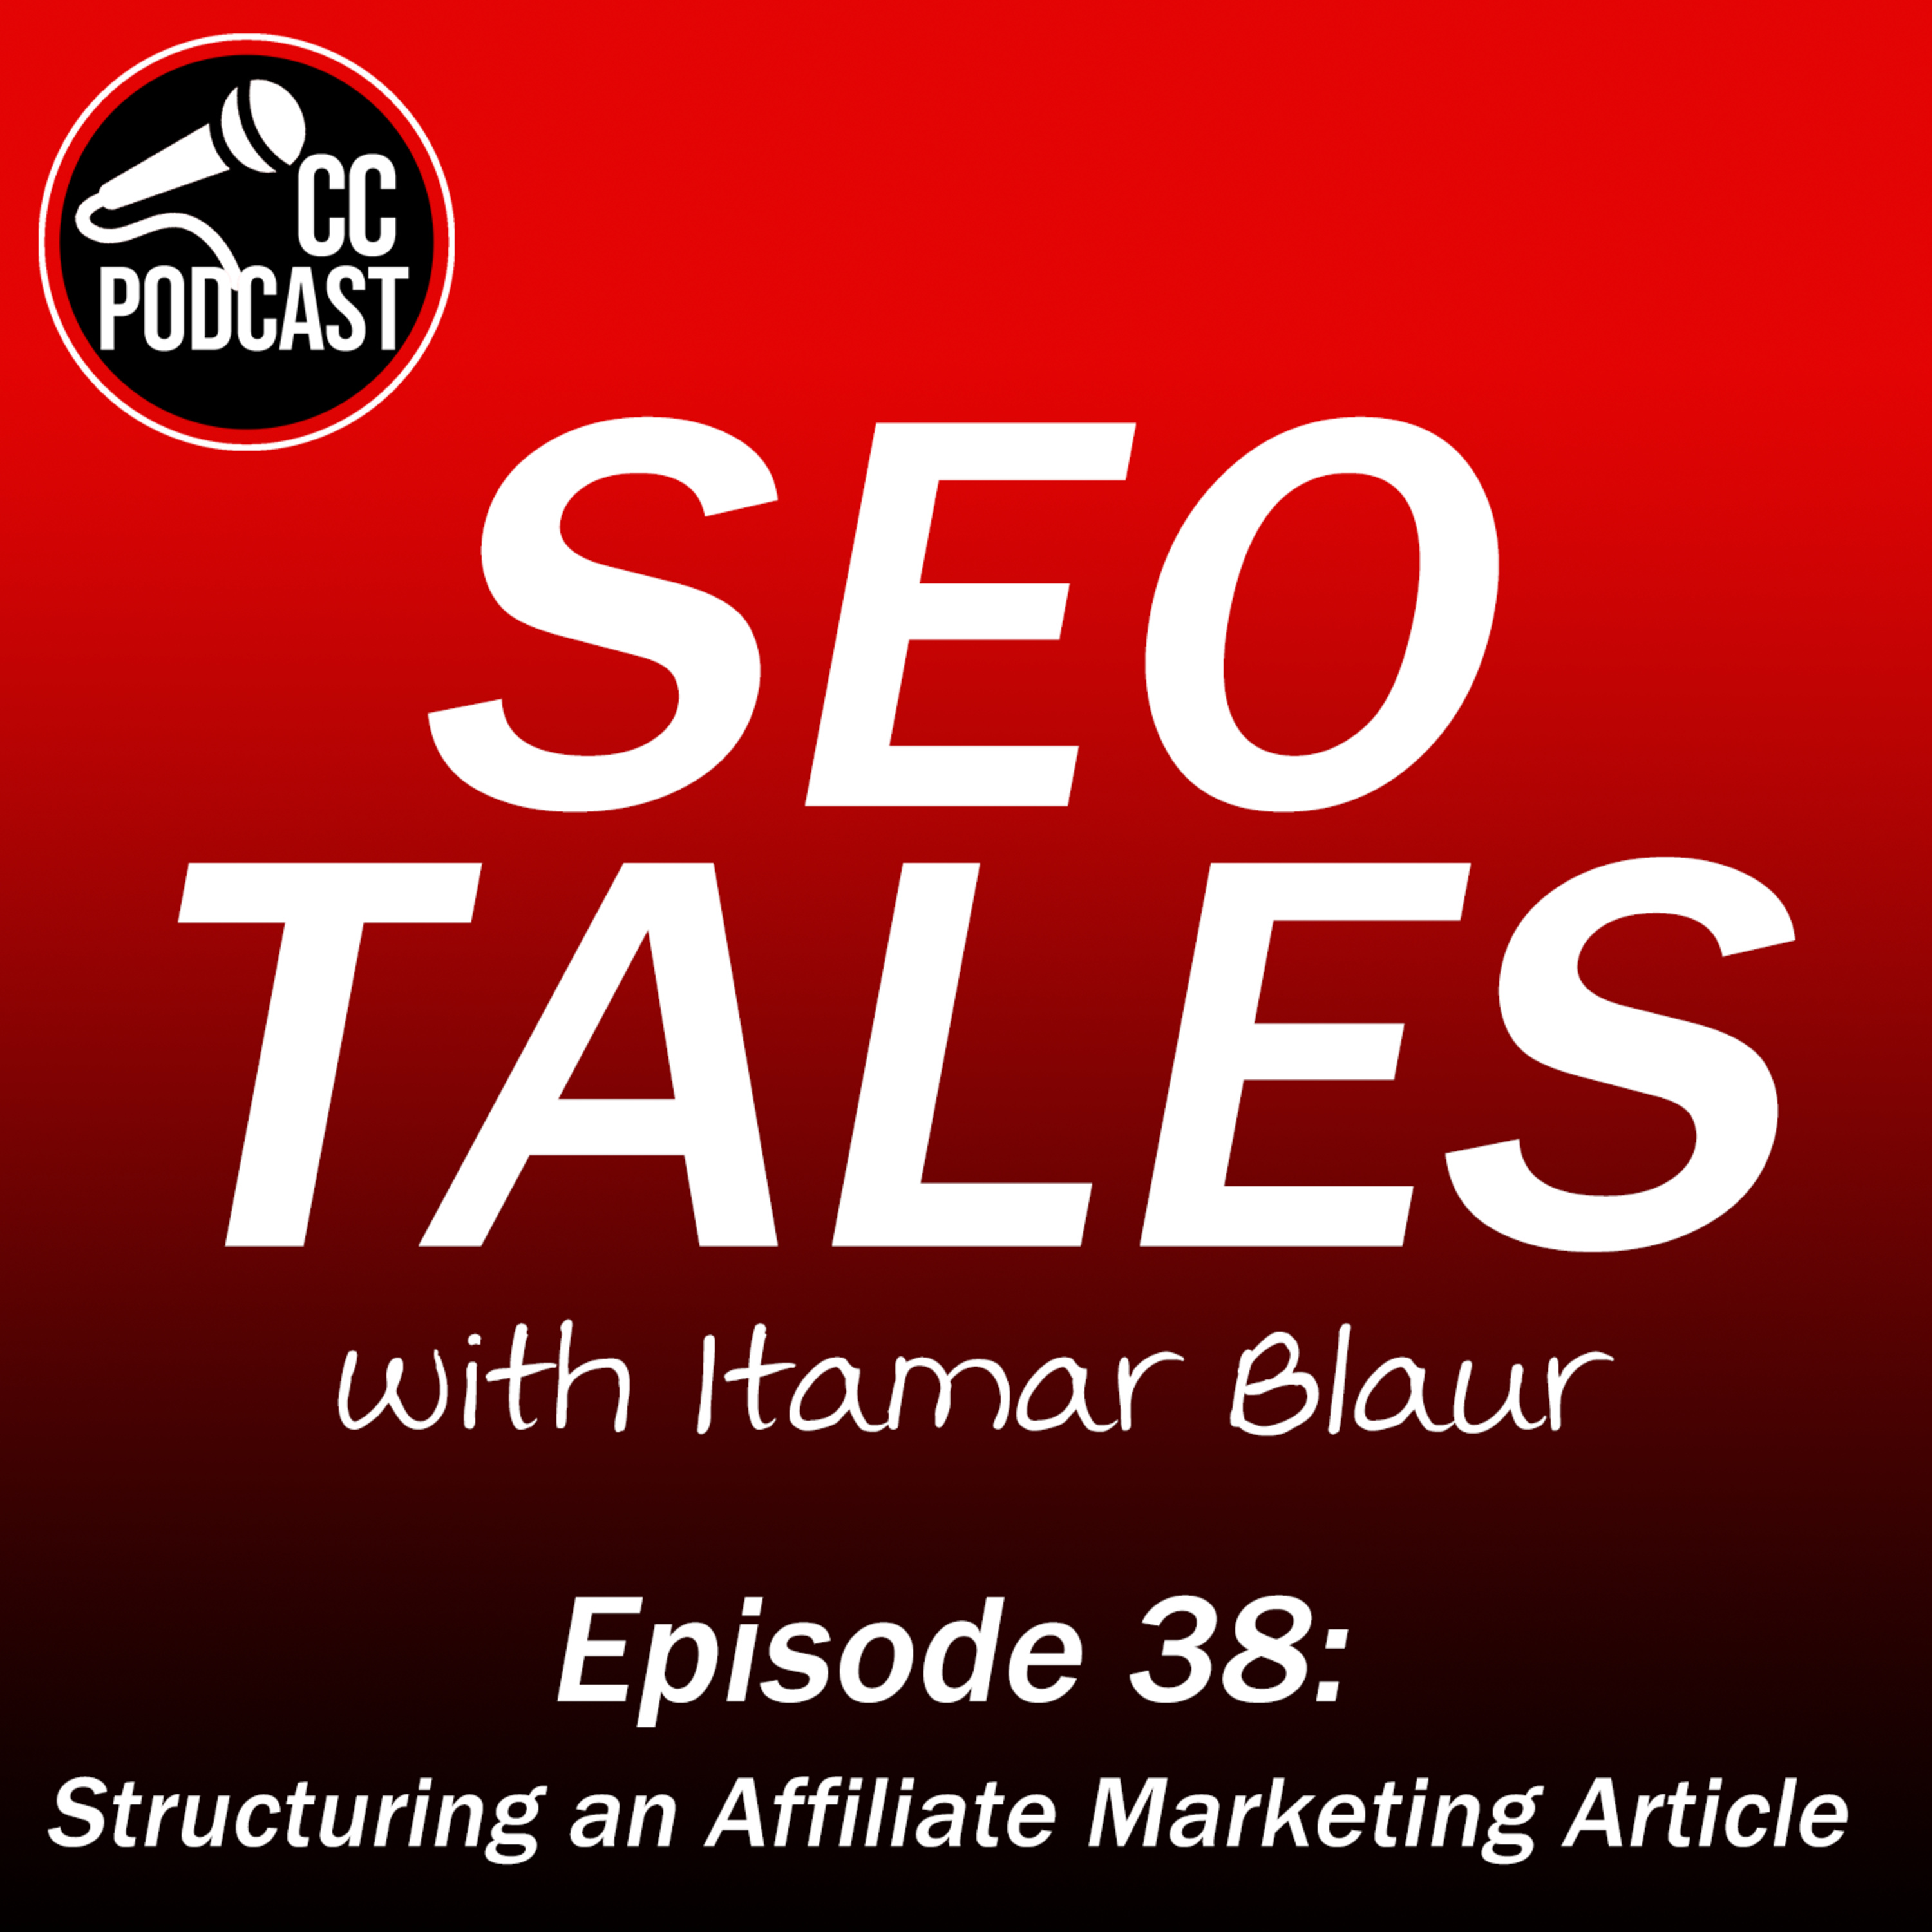 SEO Tales Episode 38 - Structuring an Affiliate Marketing Article